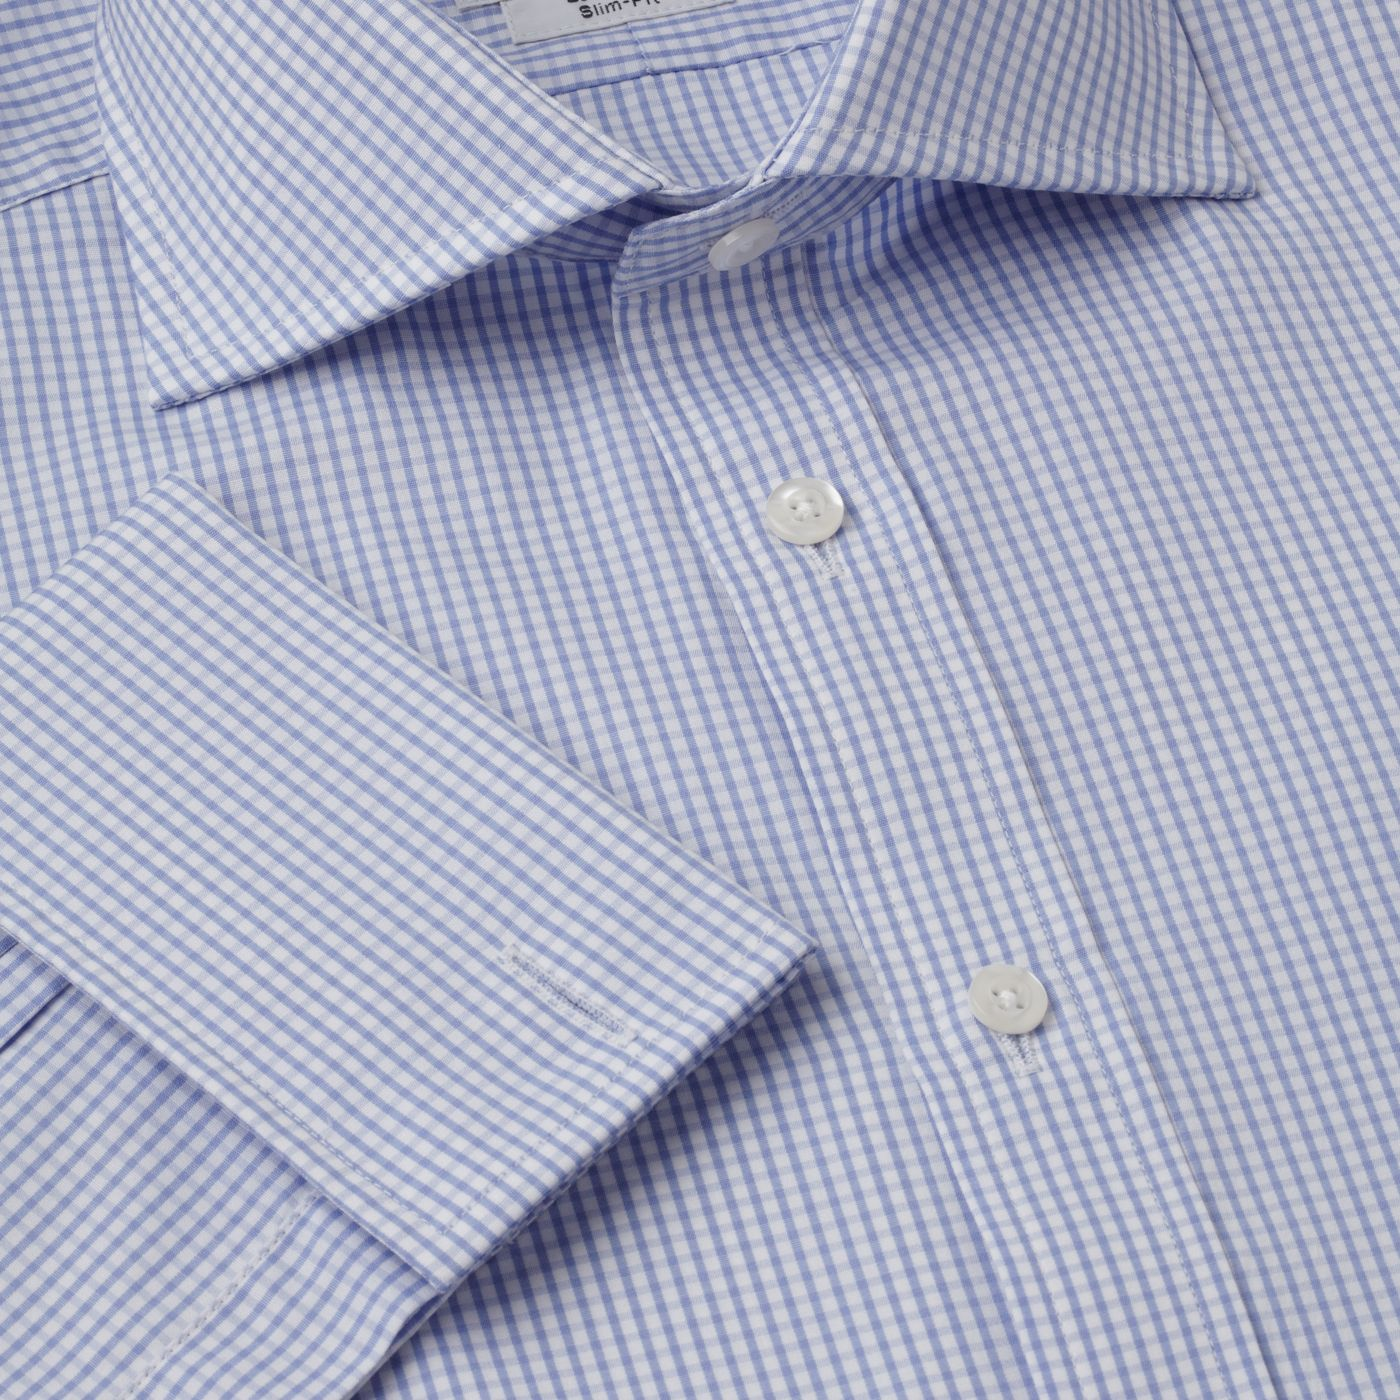 Gingham Windsor shirt